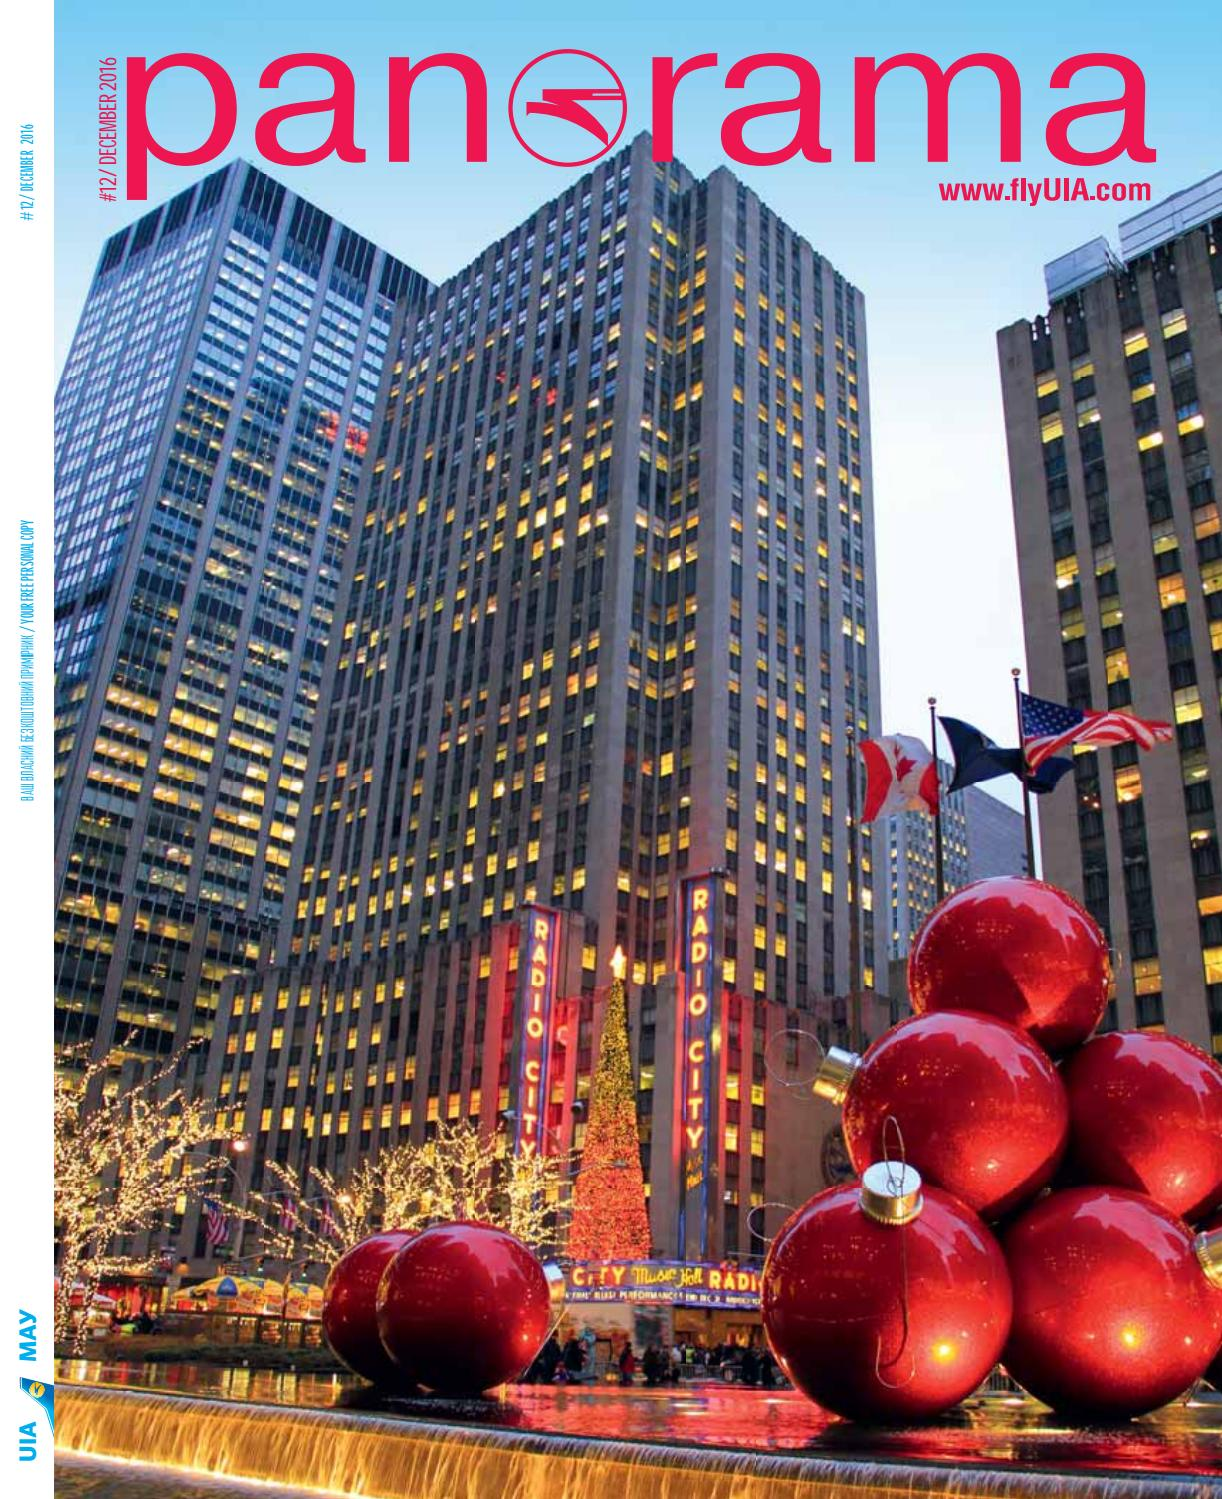 Panorama December 2016 by AT.Media - issuu 945e8d97a6a6c